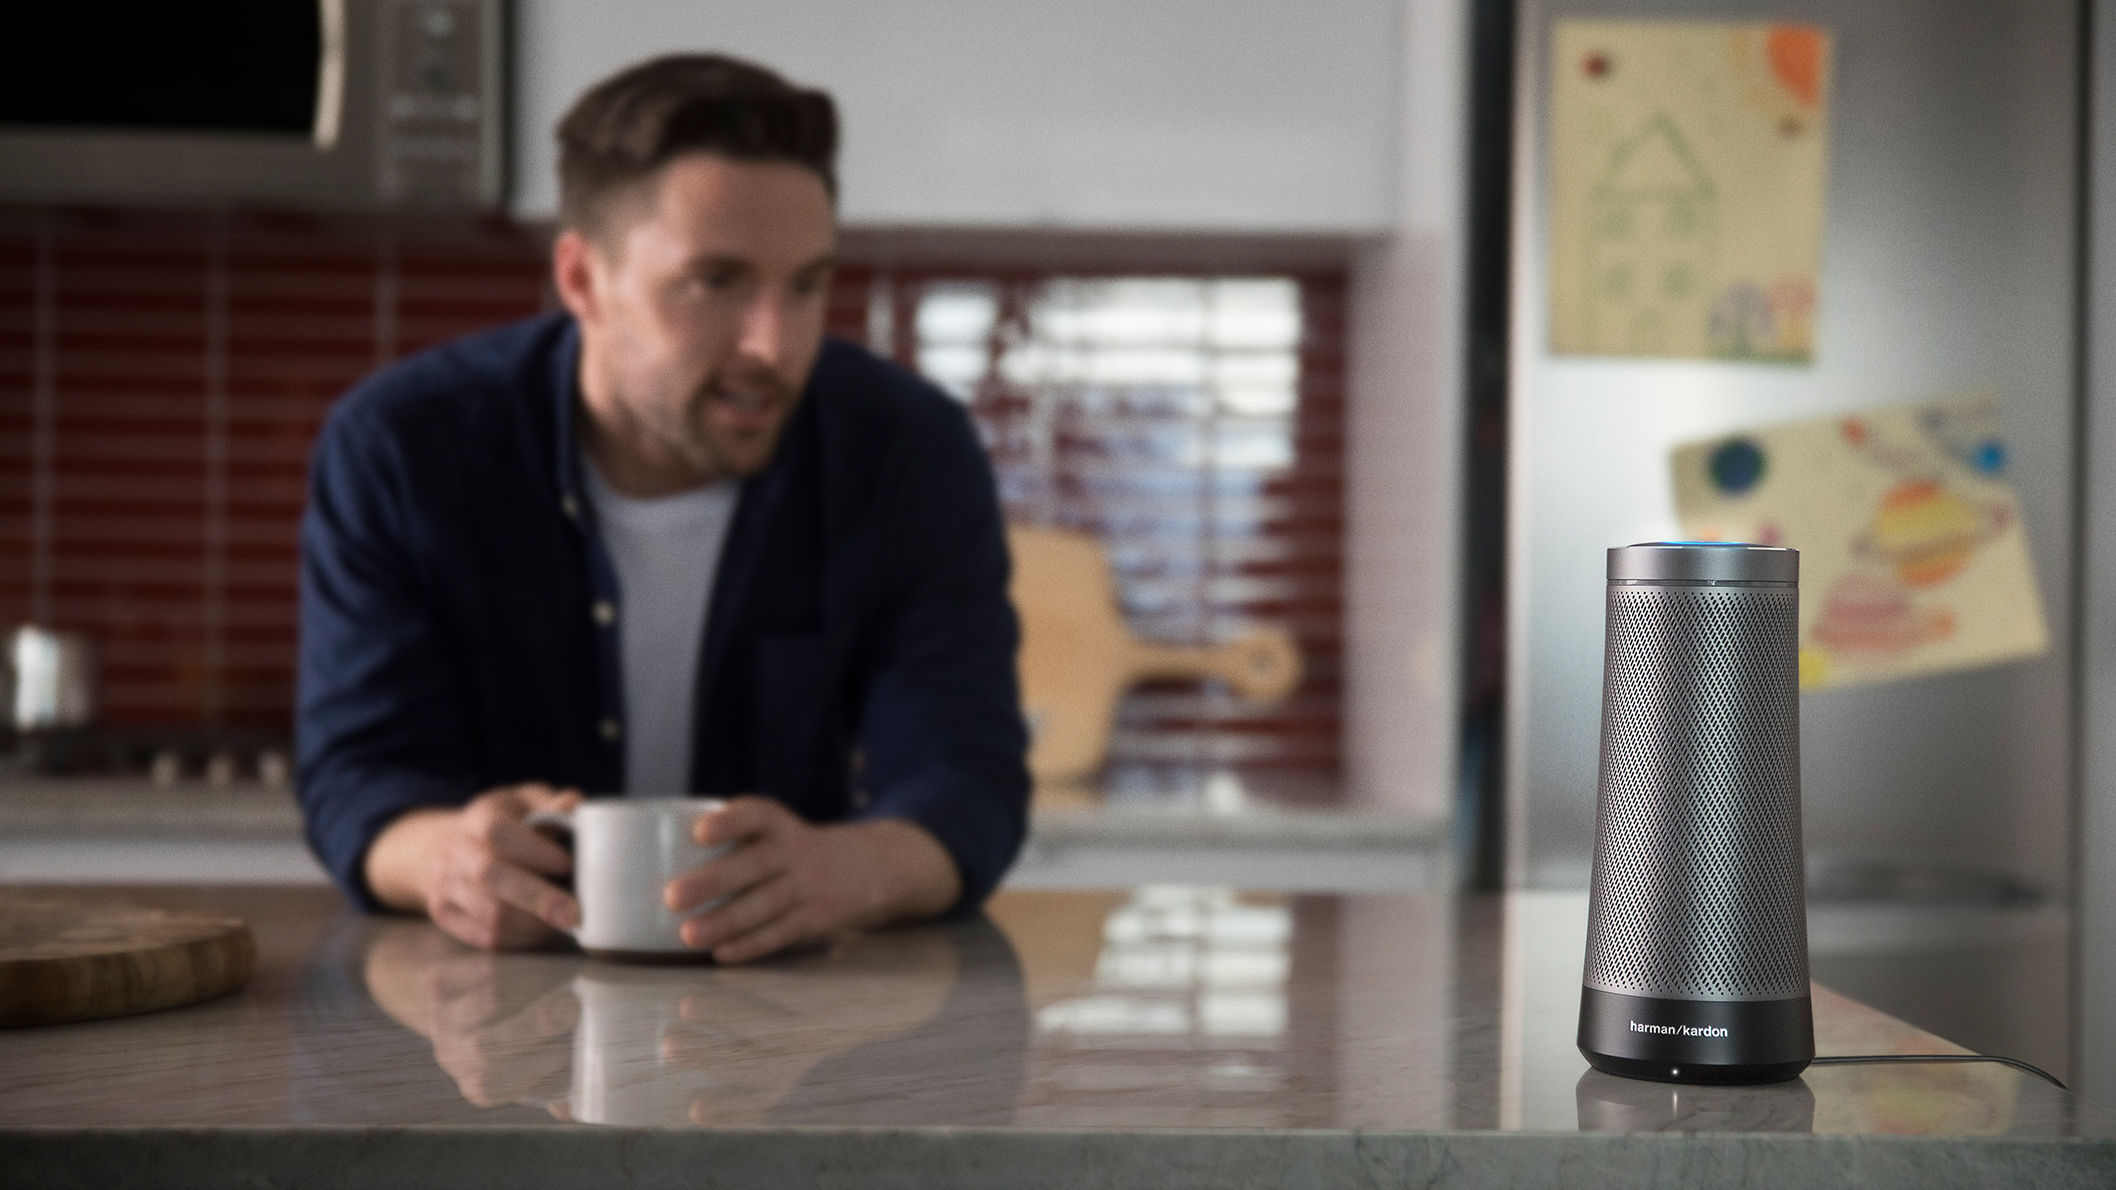 Graphite Invoke speaker on kitchen counter next to man holding coffee cup